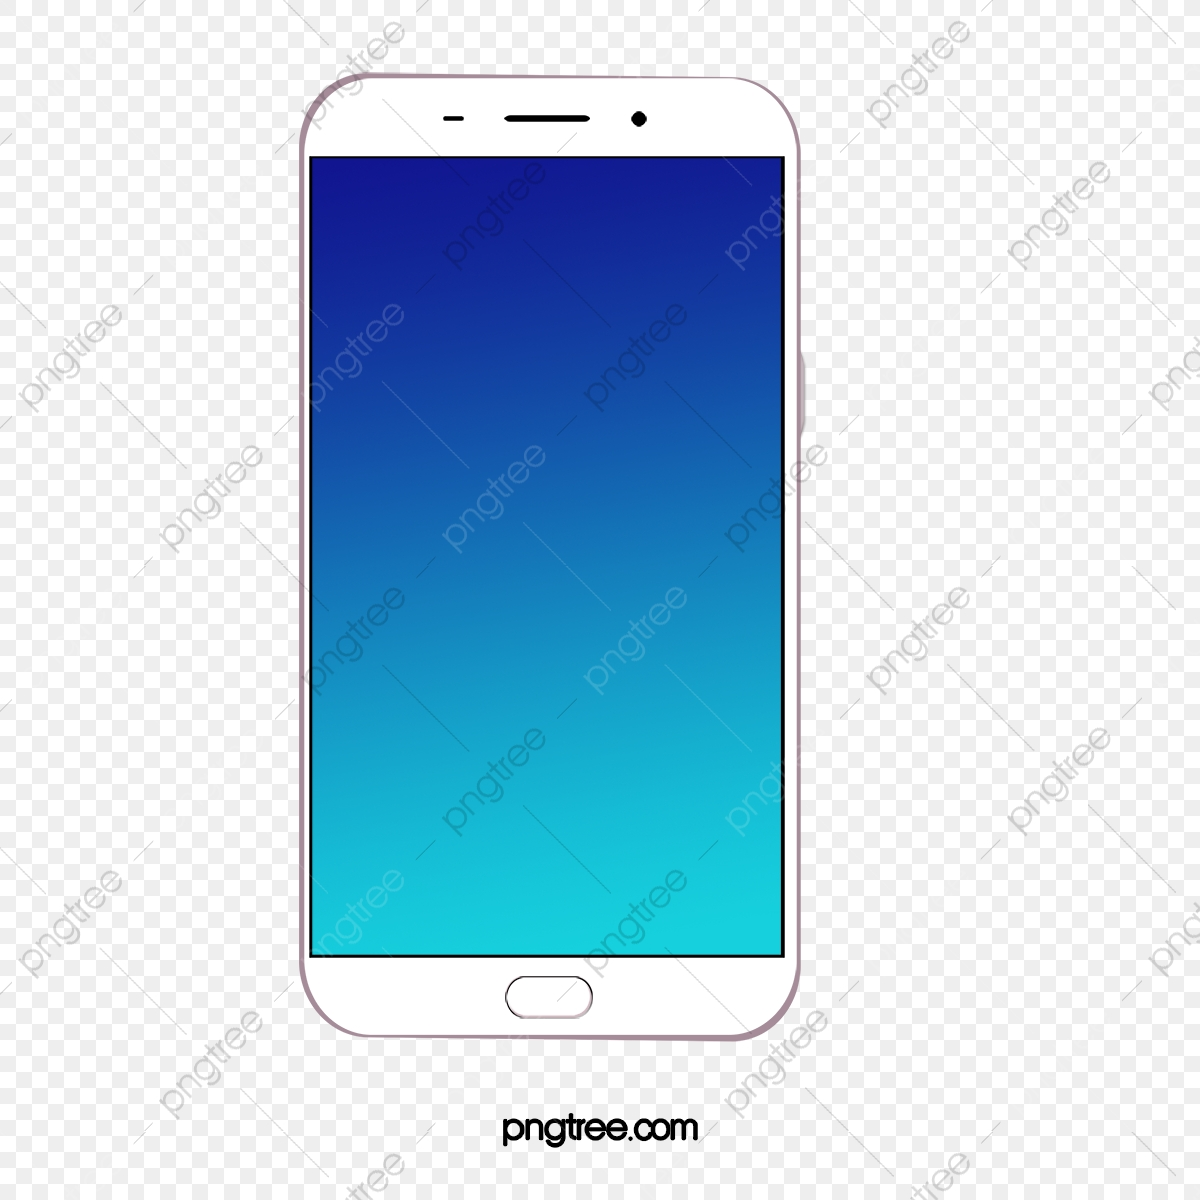 Oppo Phone, Phone Clipart, Oppo, Phone PNG Transparent.